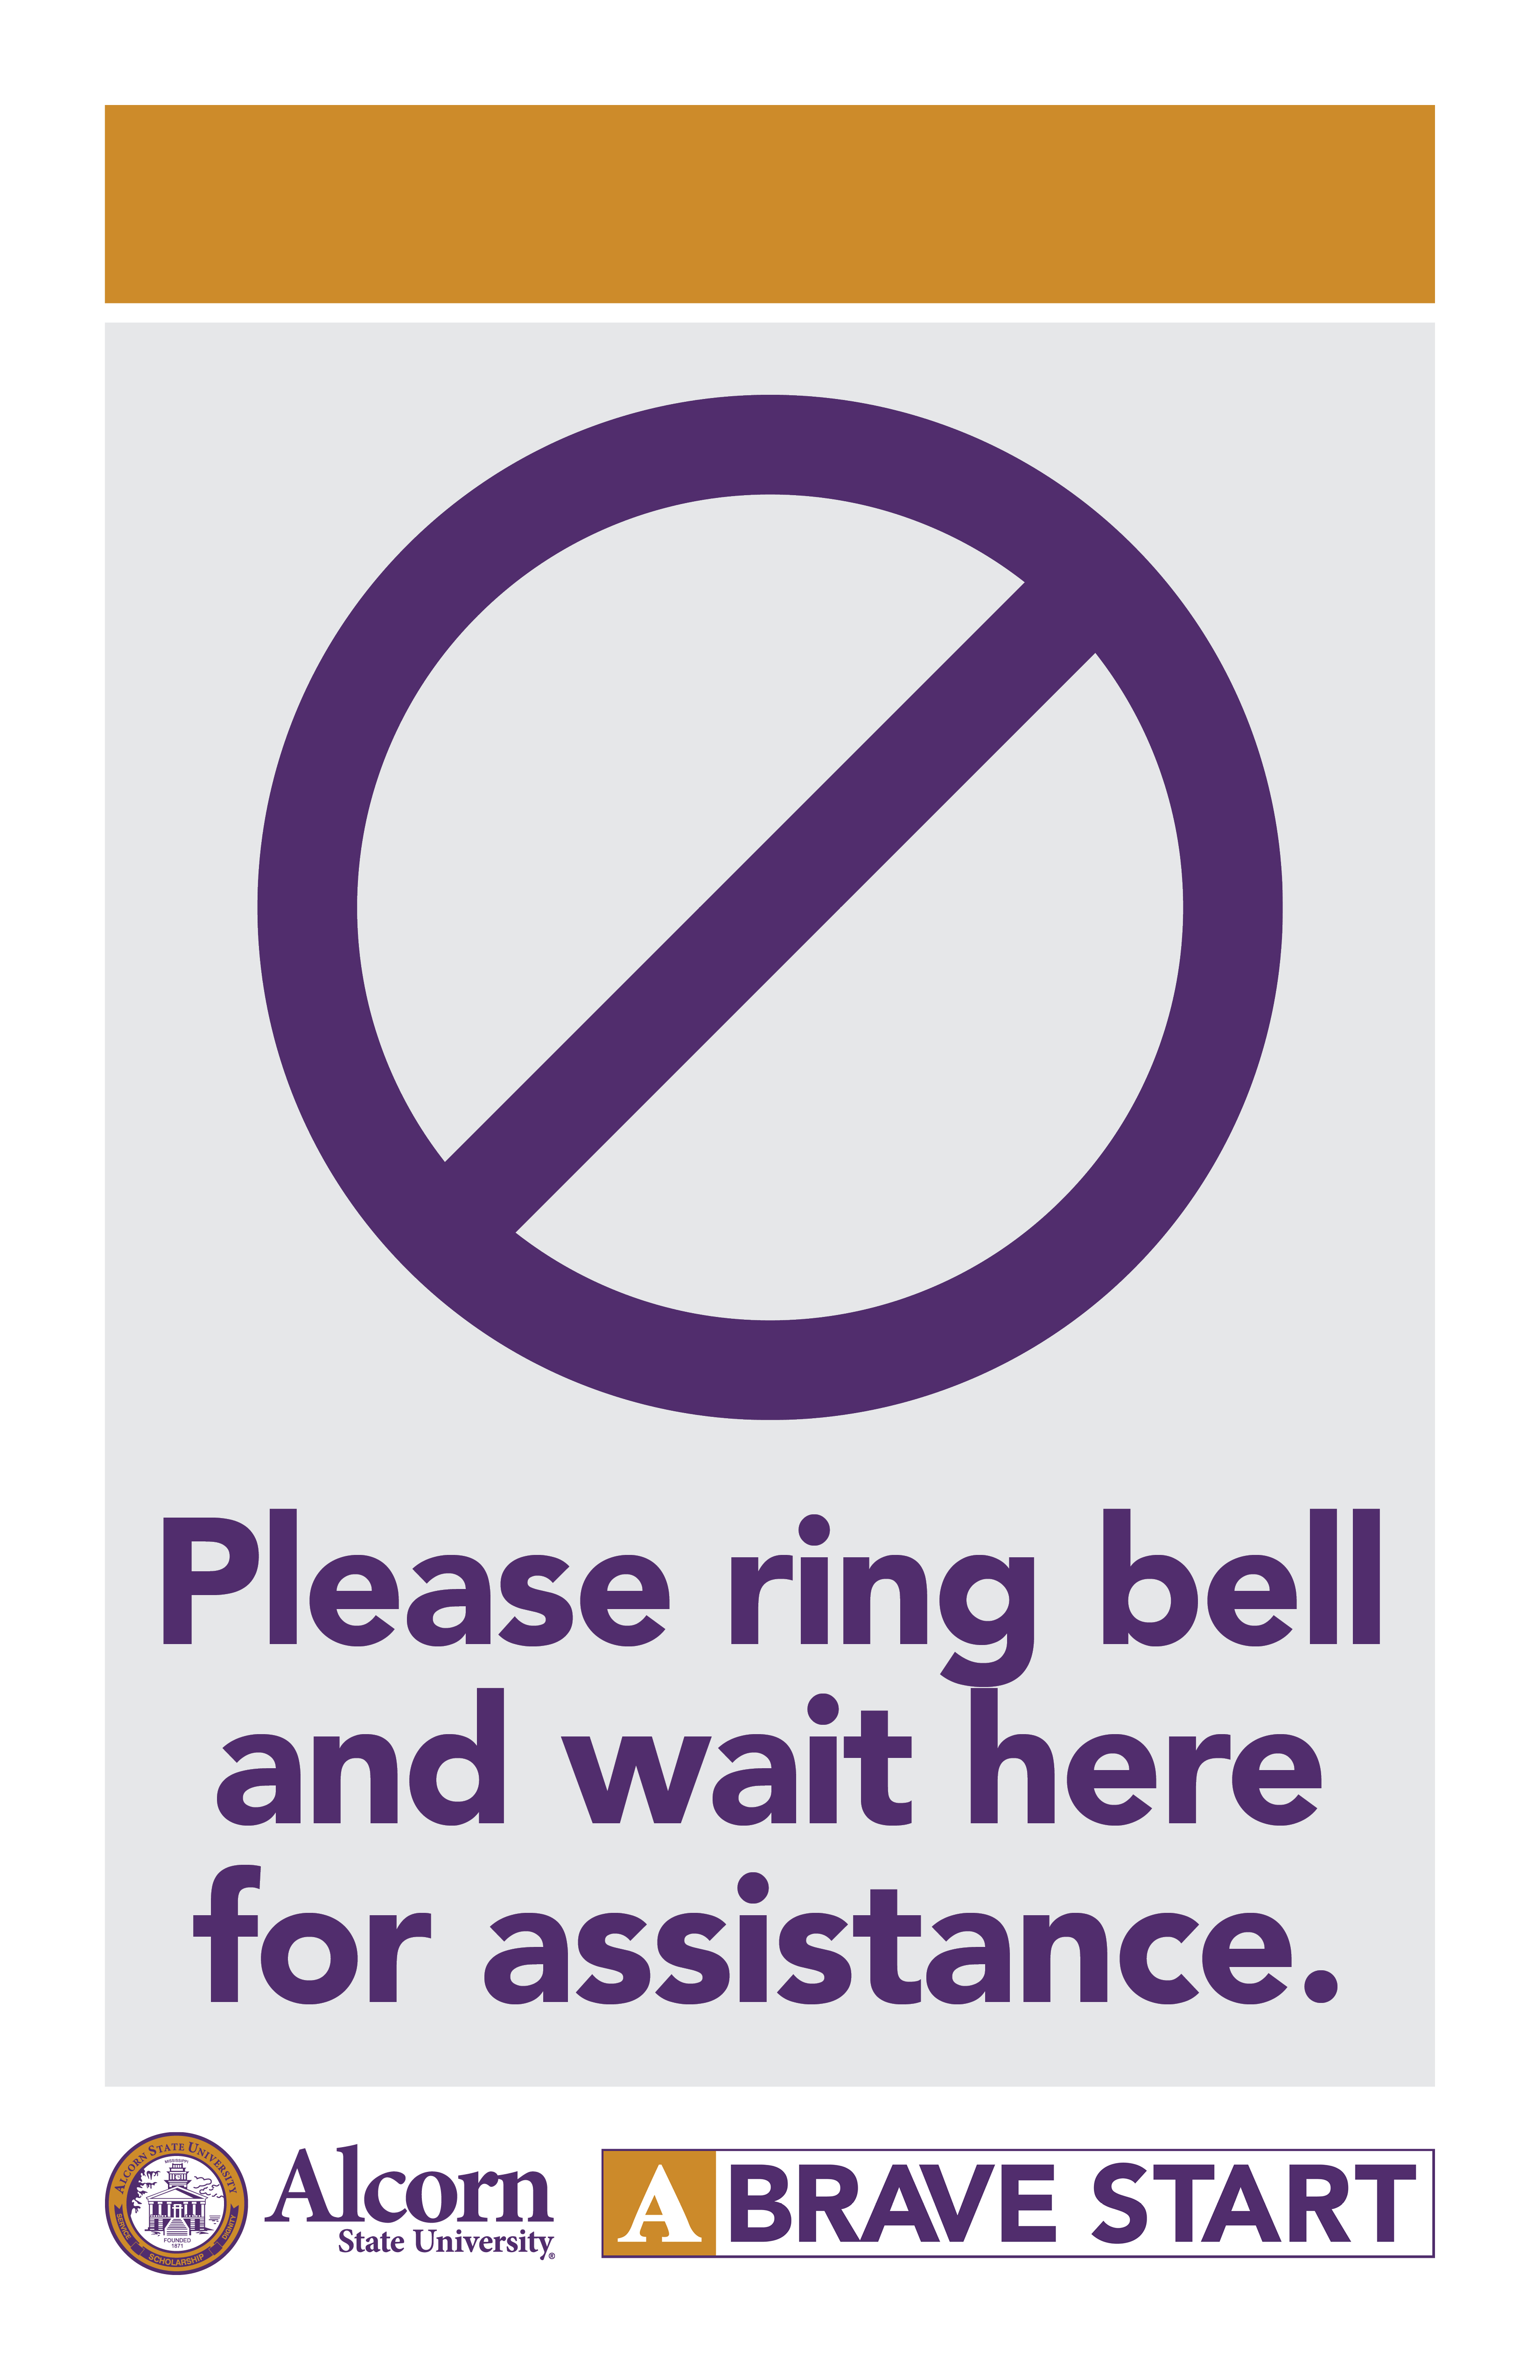 (Picture of a caution sign) Please ring bell and wait here for assistance. (Alcorn logo mark. A Brave Start logo mark.)